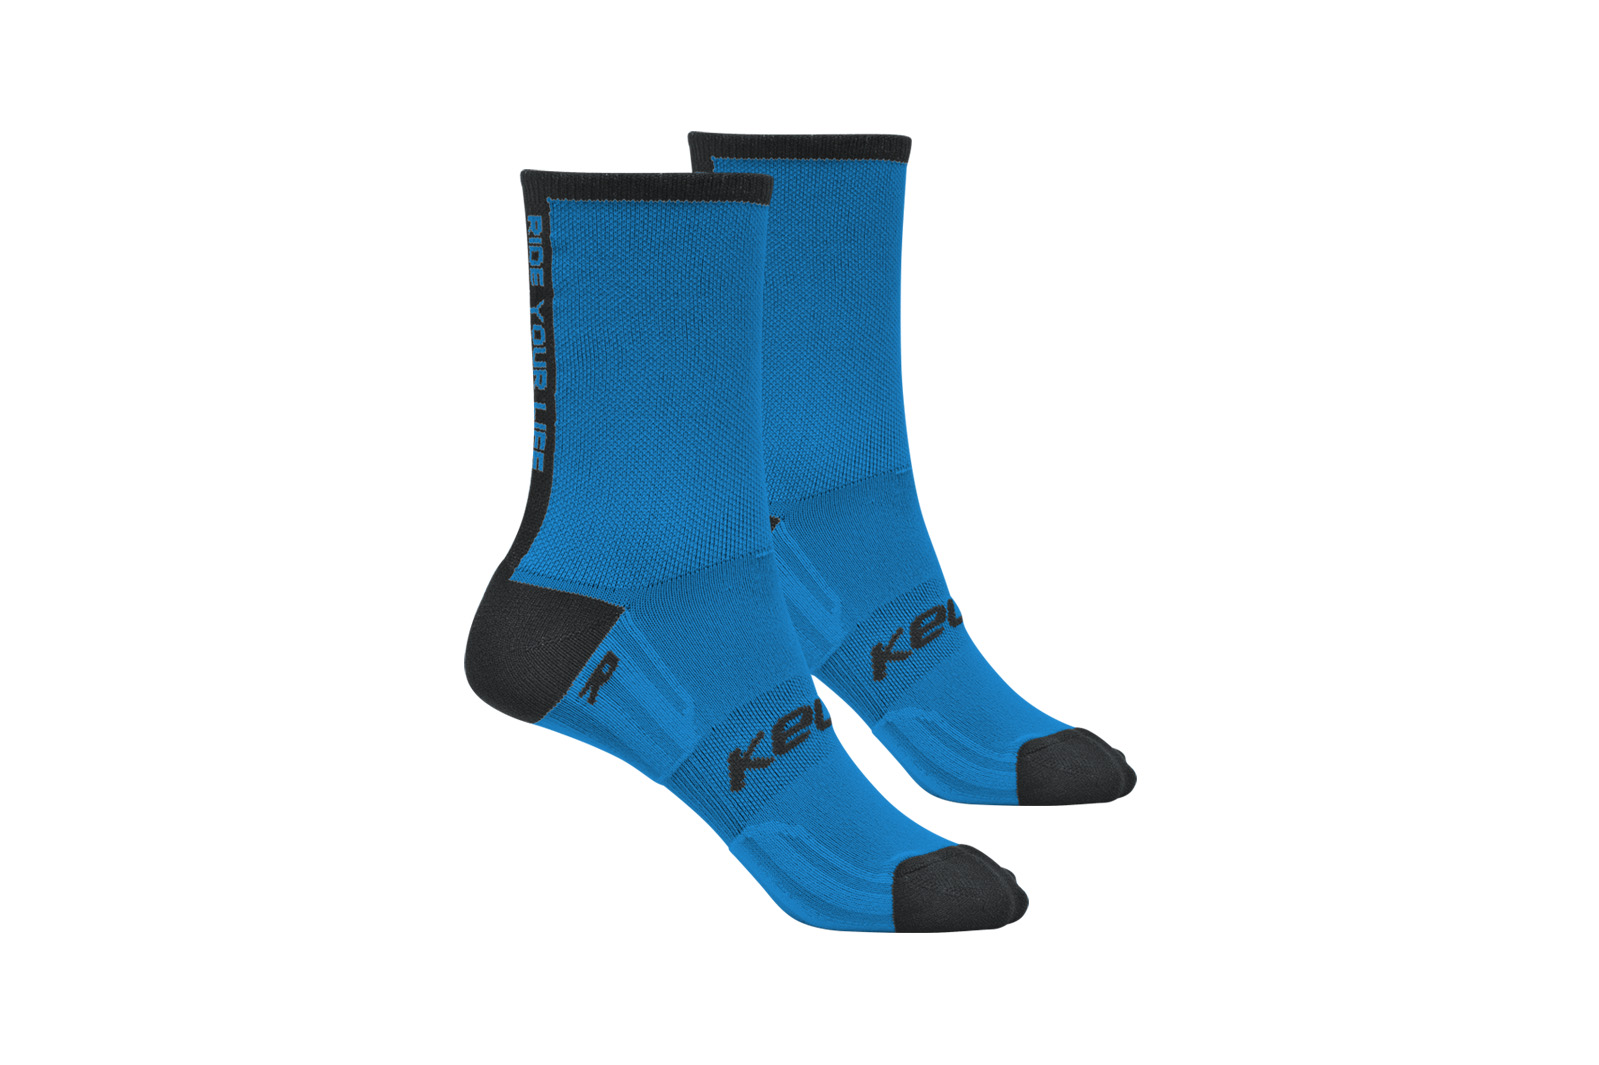 Socken KELLYS PRO Race blue 38-42 (016) - bagier Sports GmbH